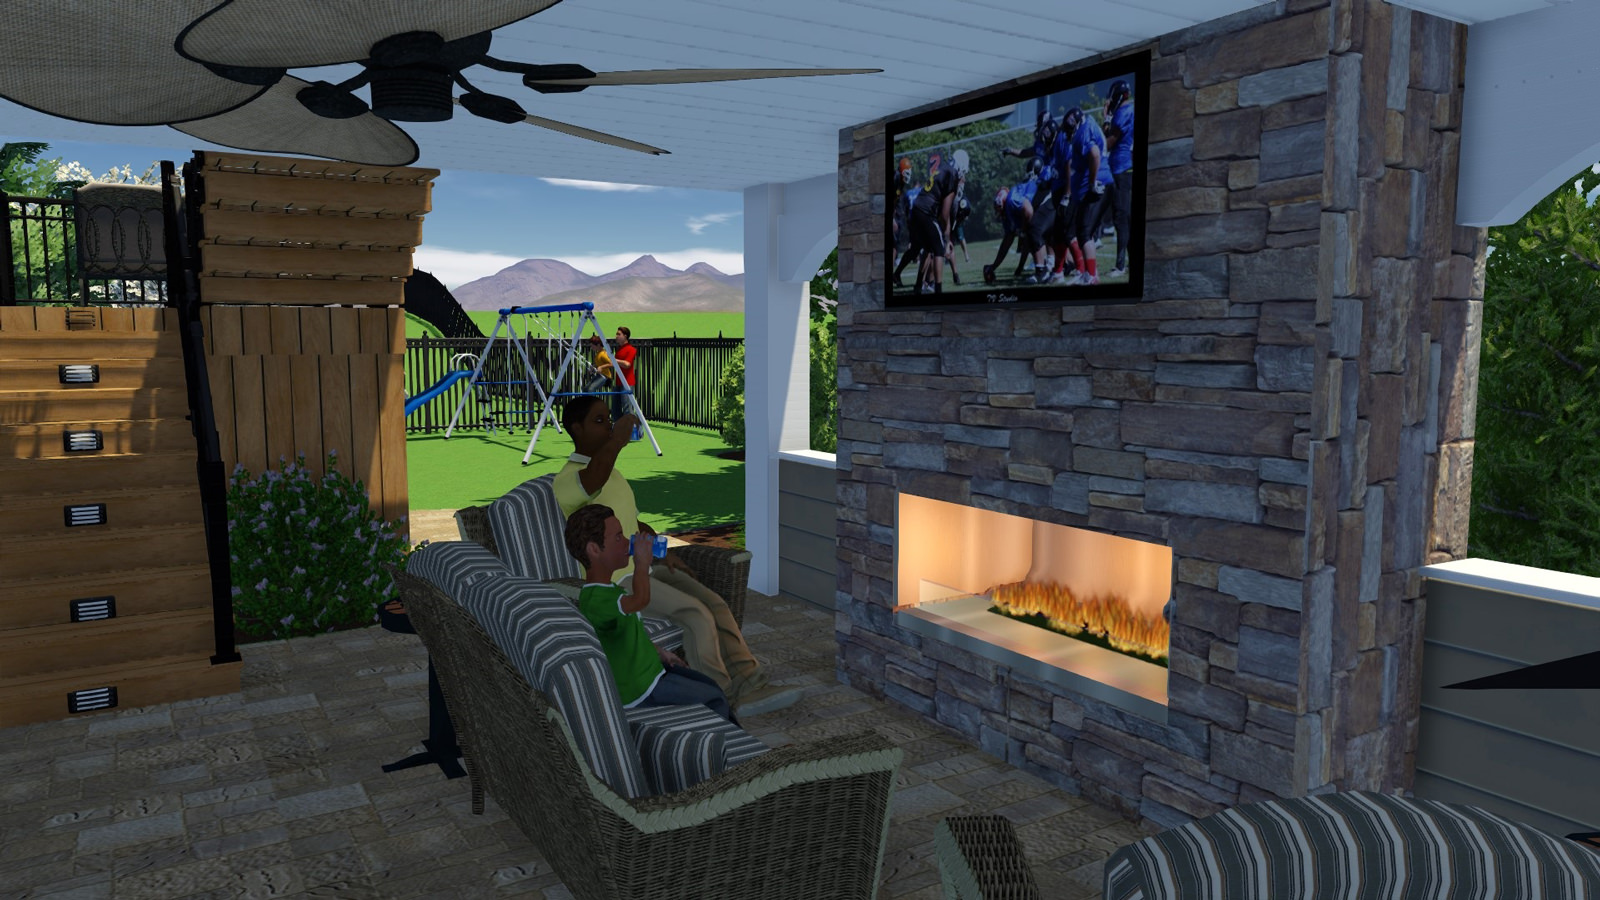 Implementing features like ceiling fans are a  great way to keep cool in the summer and the fireplace is perfect for chilly autumn nights!